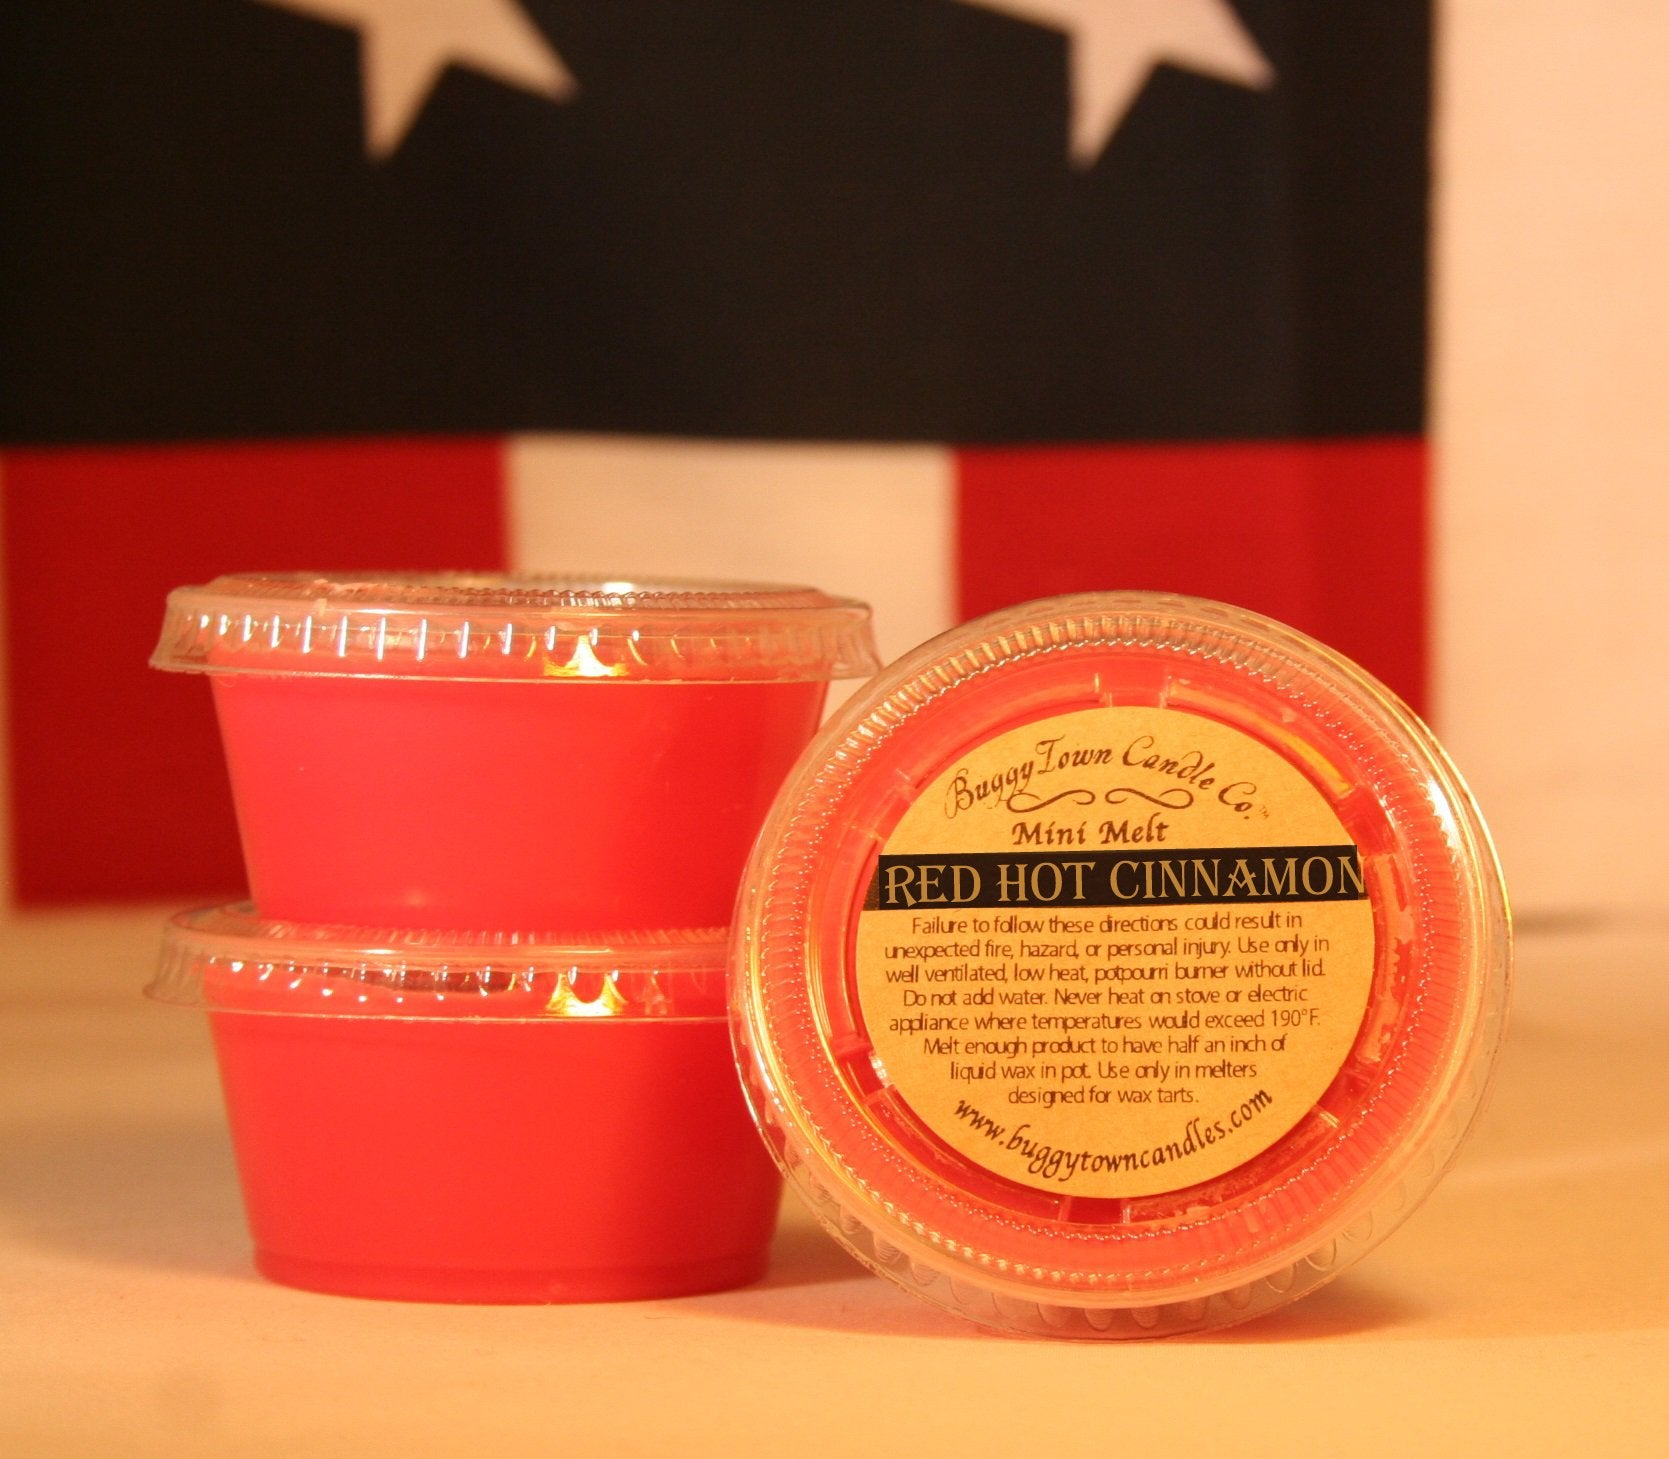 Red Hot Cinnamon Candles